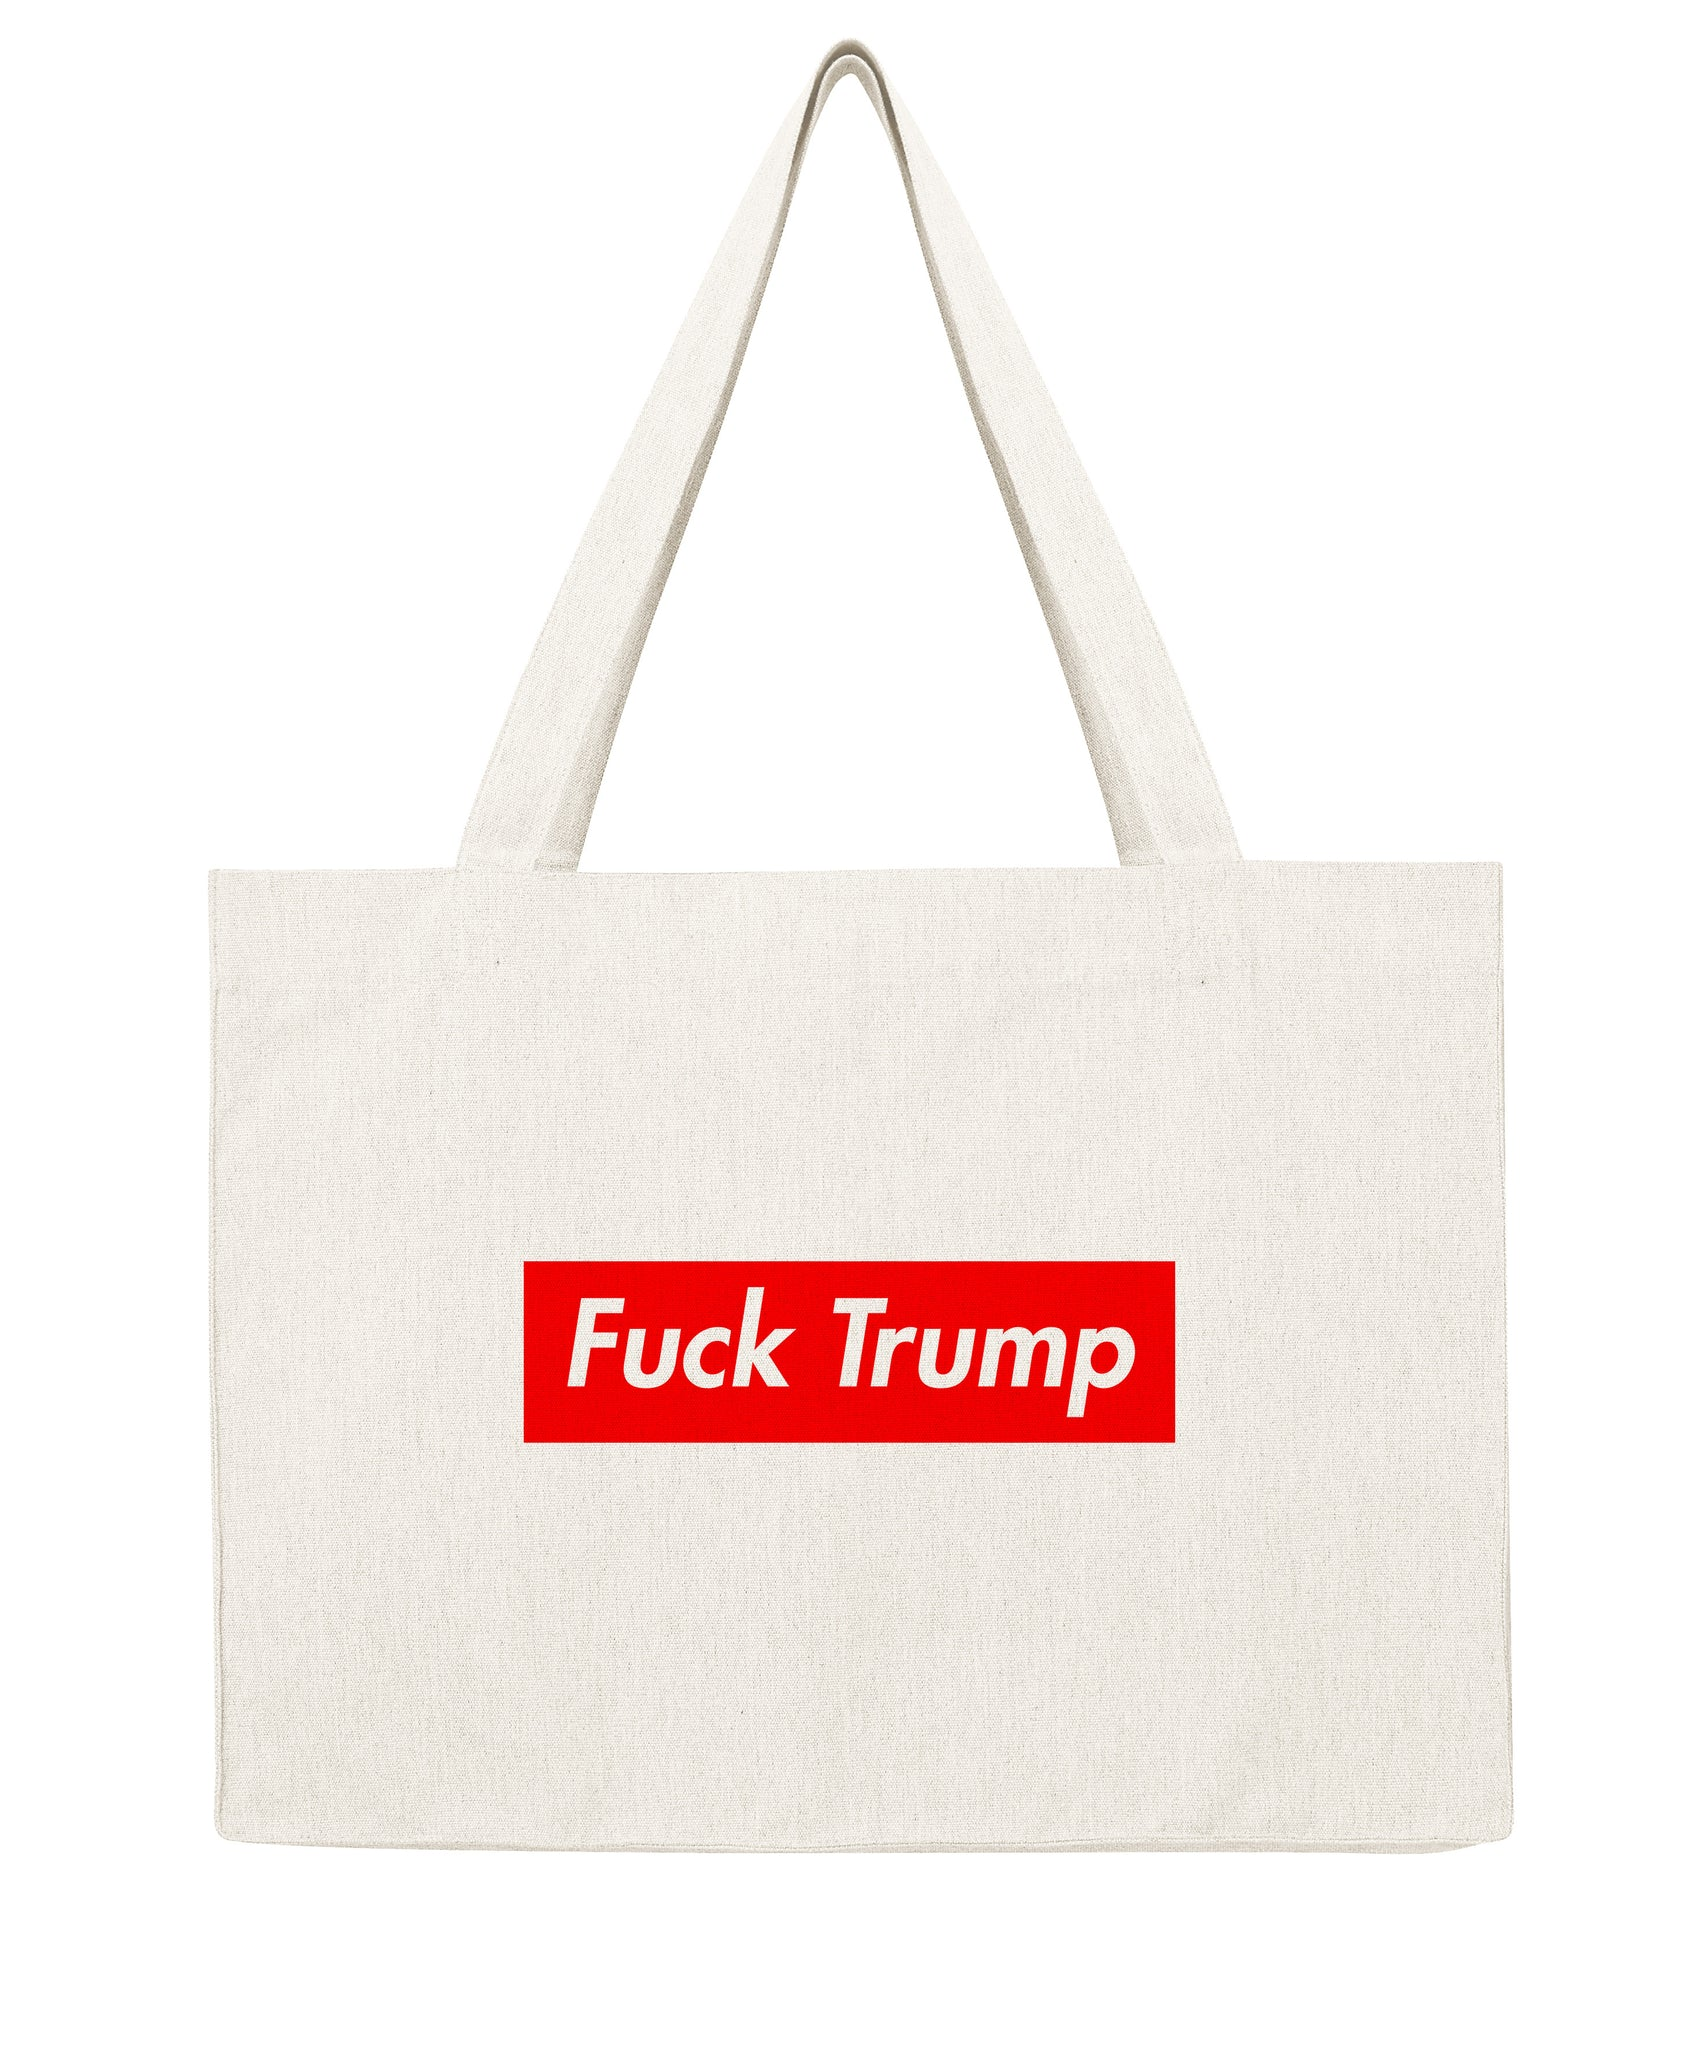 Fk Trump - Shopping bag-Sacs-Atelier Amelot